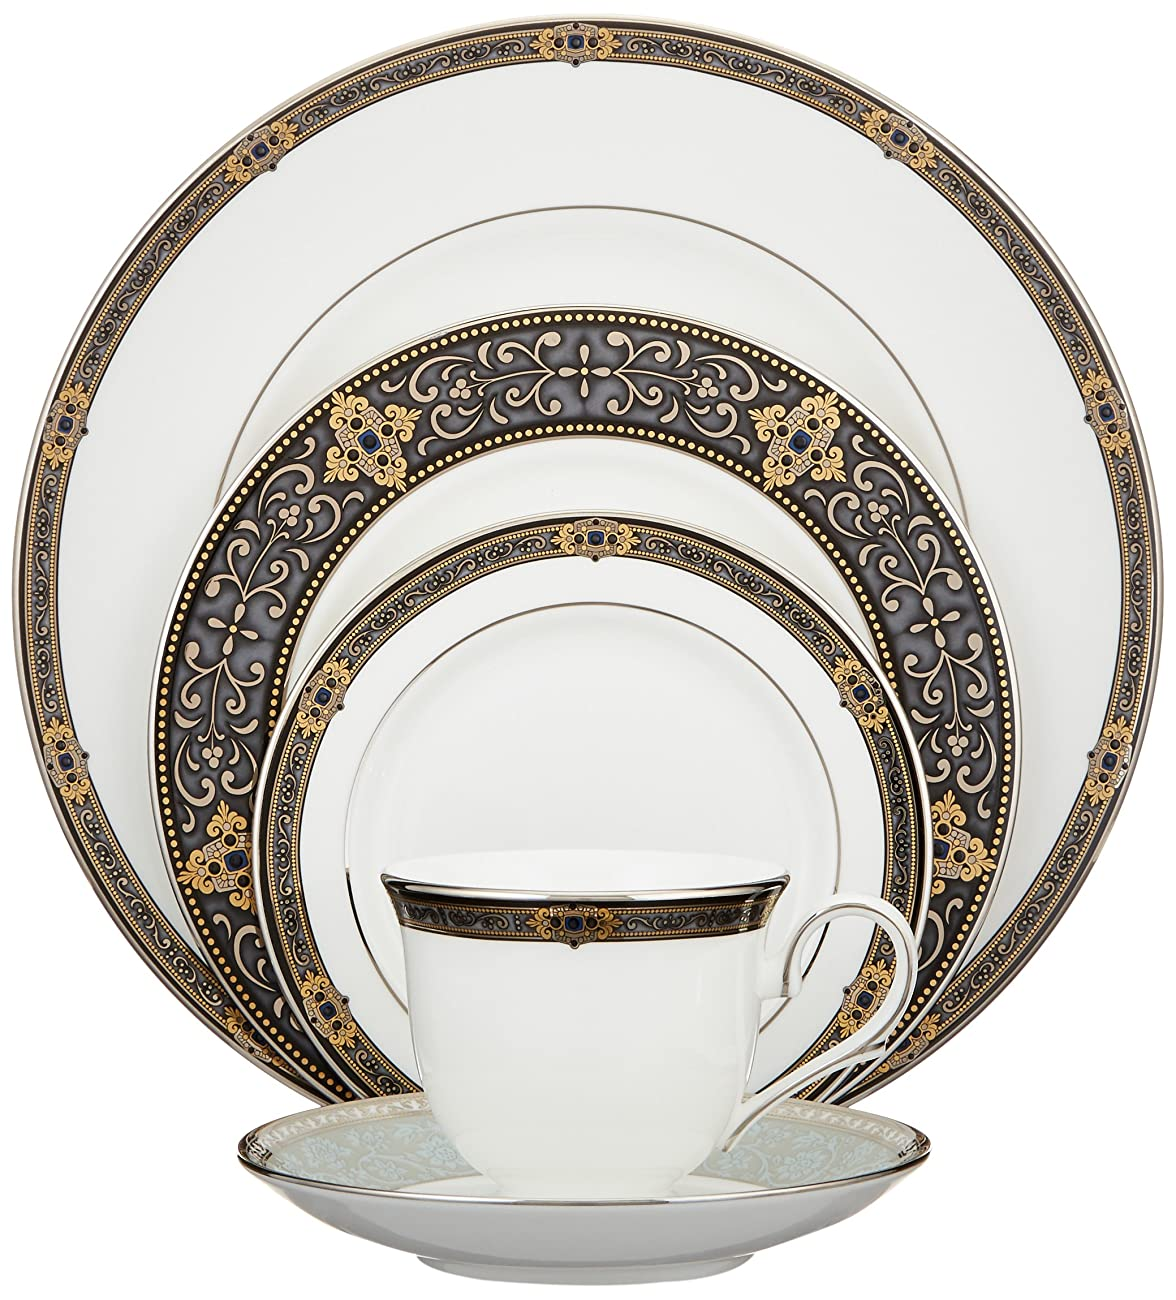 Lenox Vintage Jewel Platinum-Banded Bone China 5-Piece Place Setting, Service for 1 0